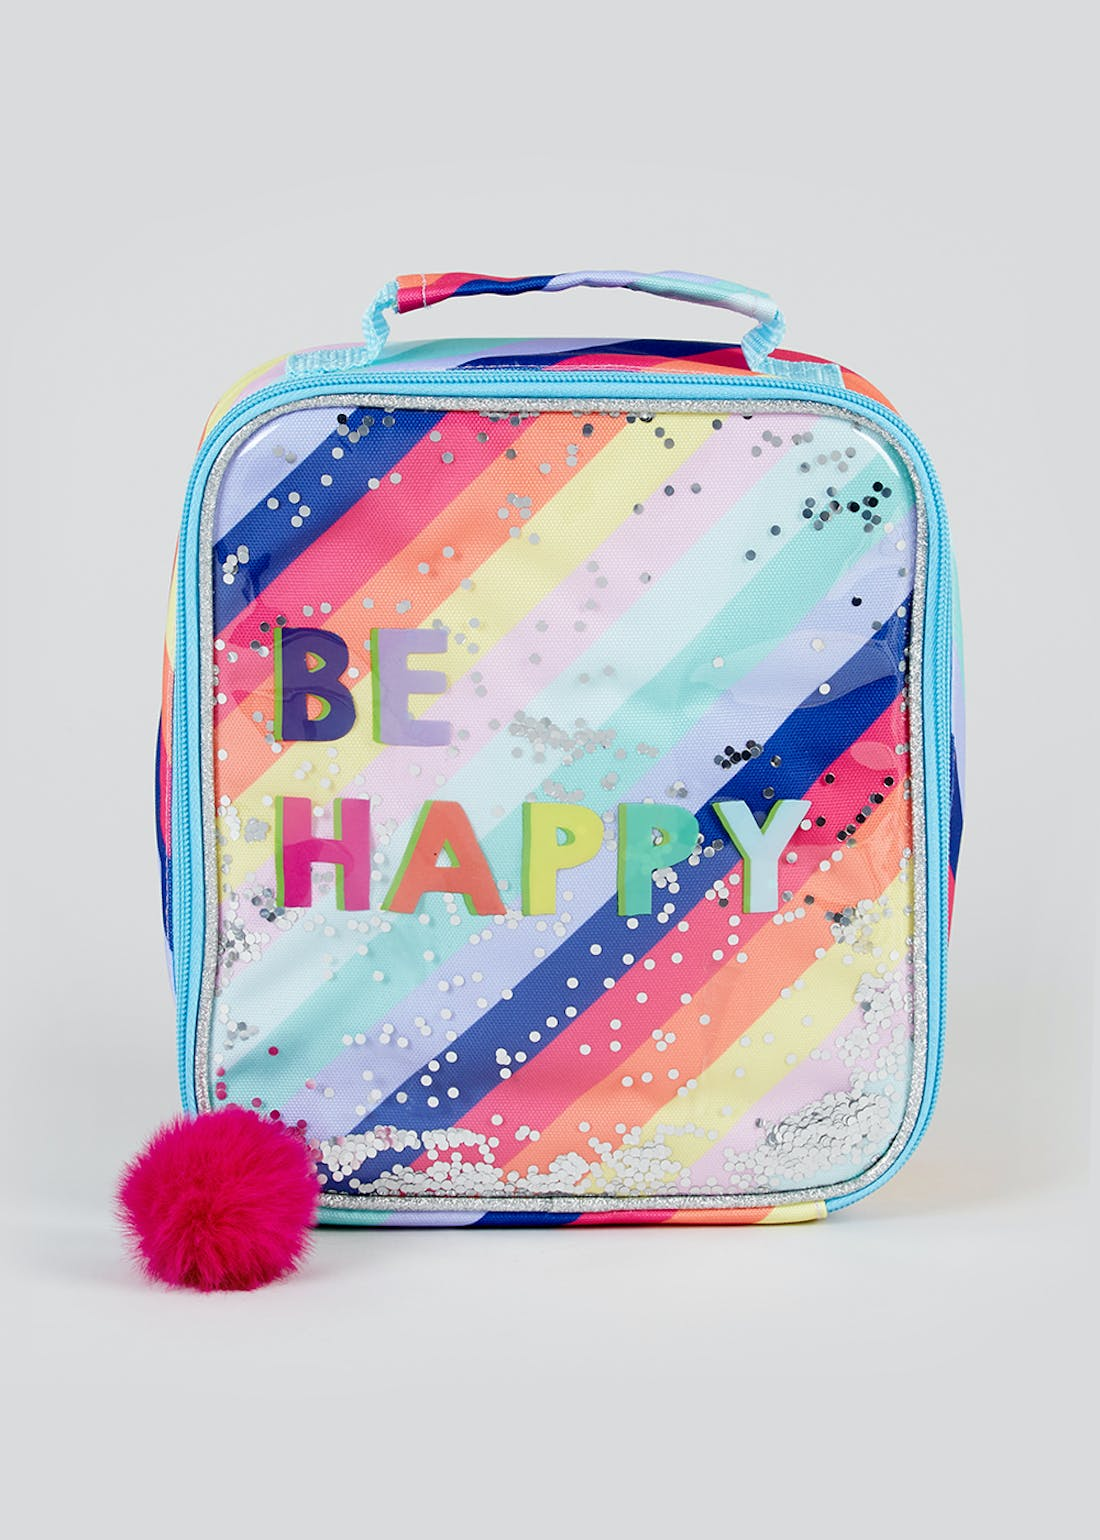 Be Happy Rainbow Glitter Lunch Bag (26cm x 22cm x 6cm)